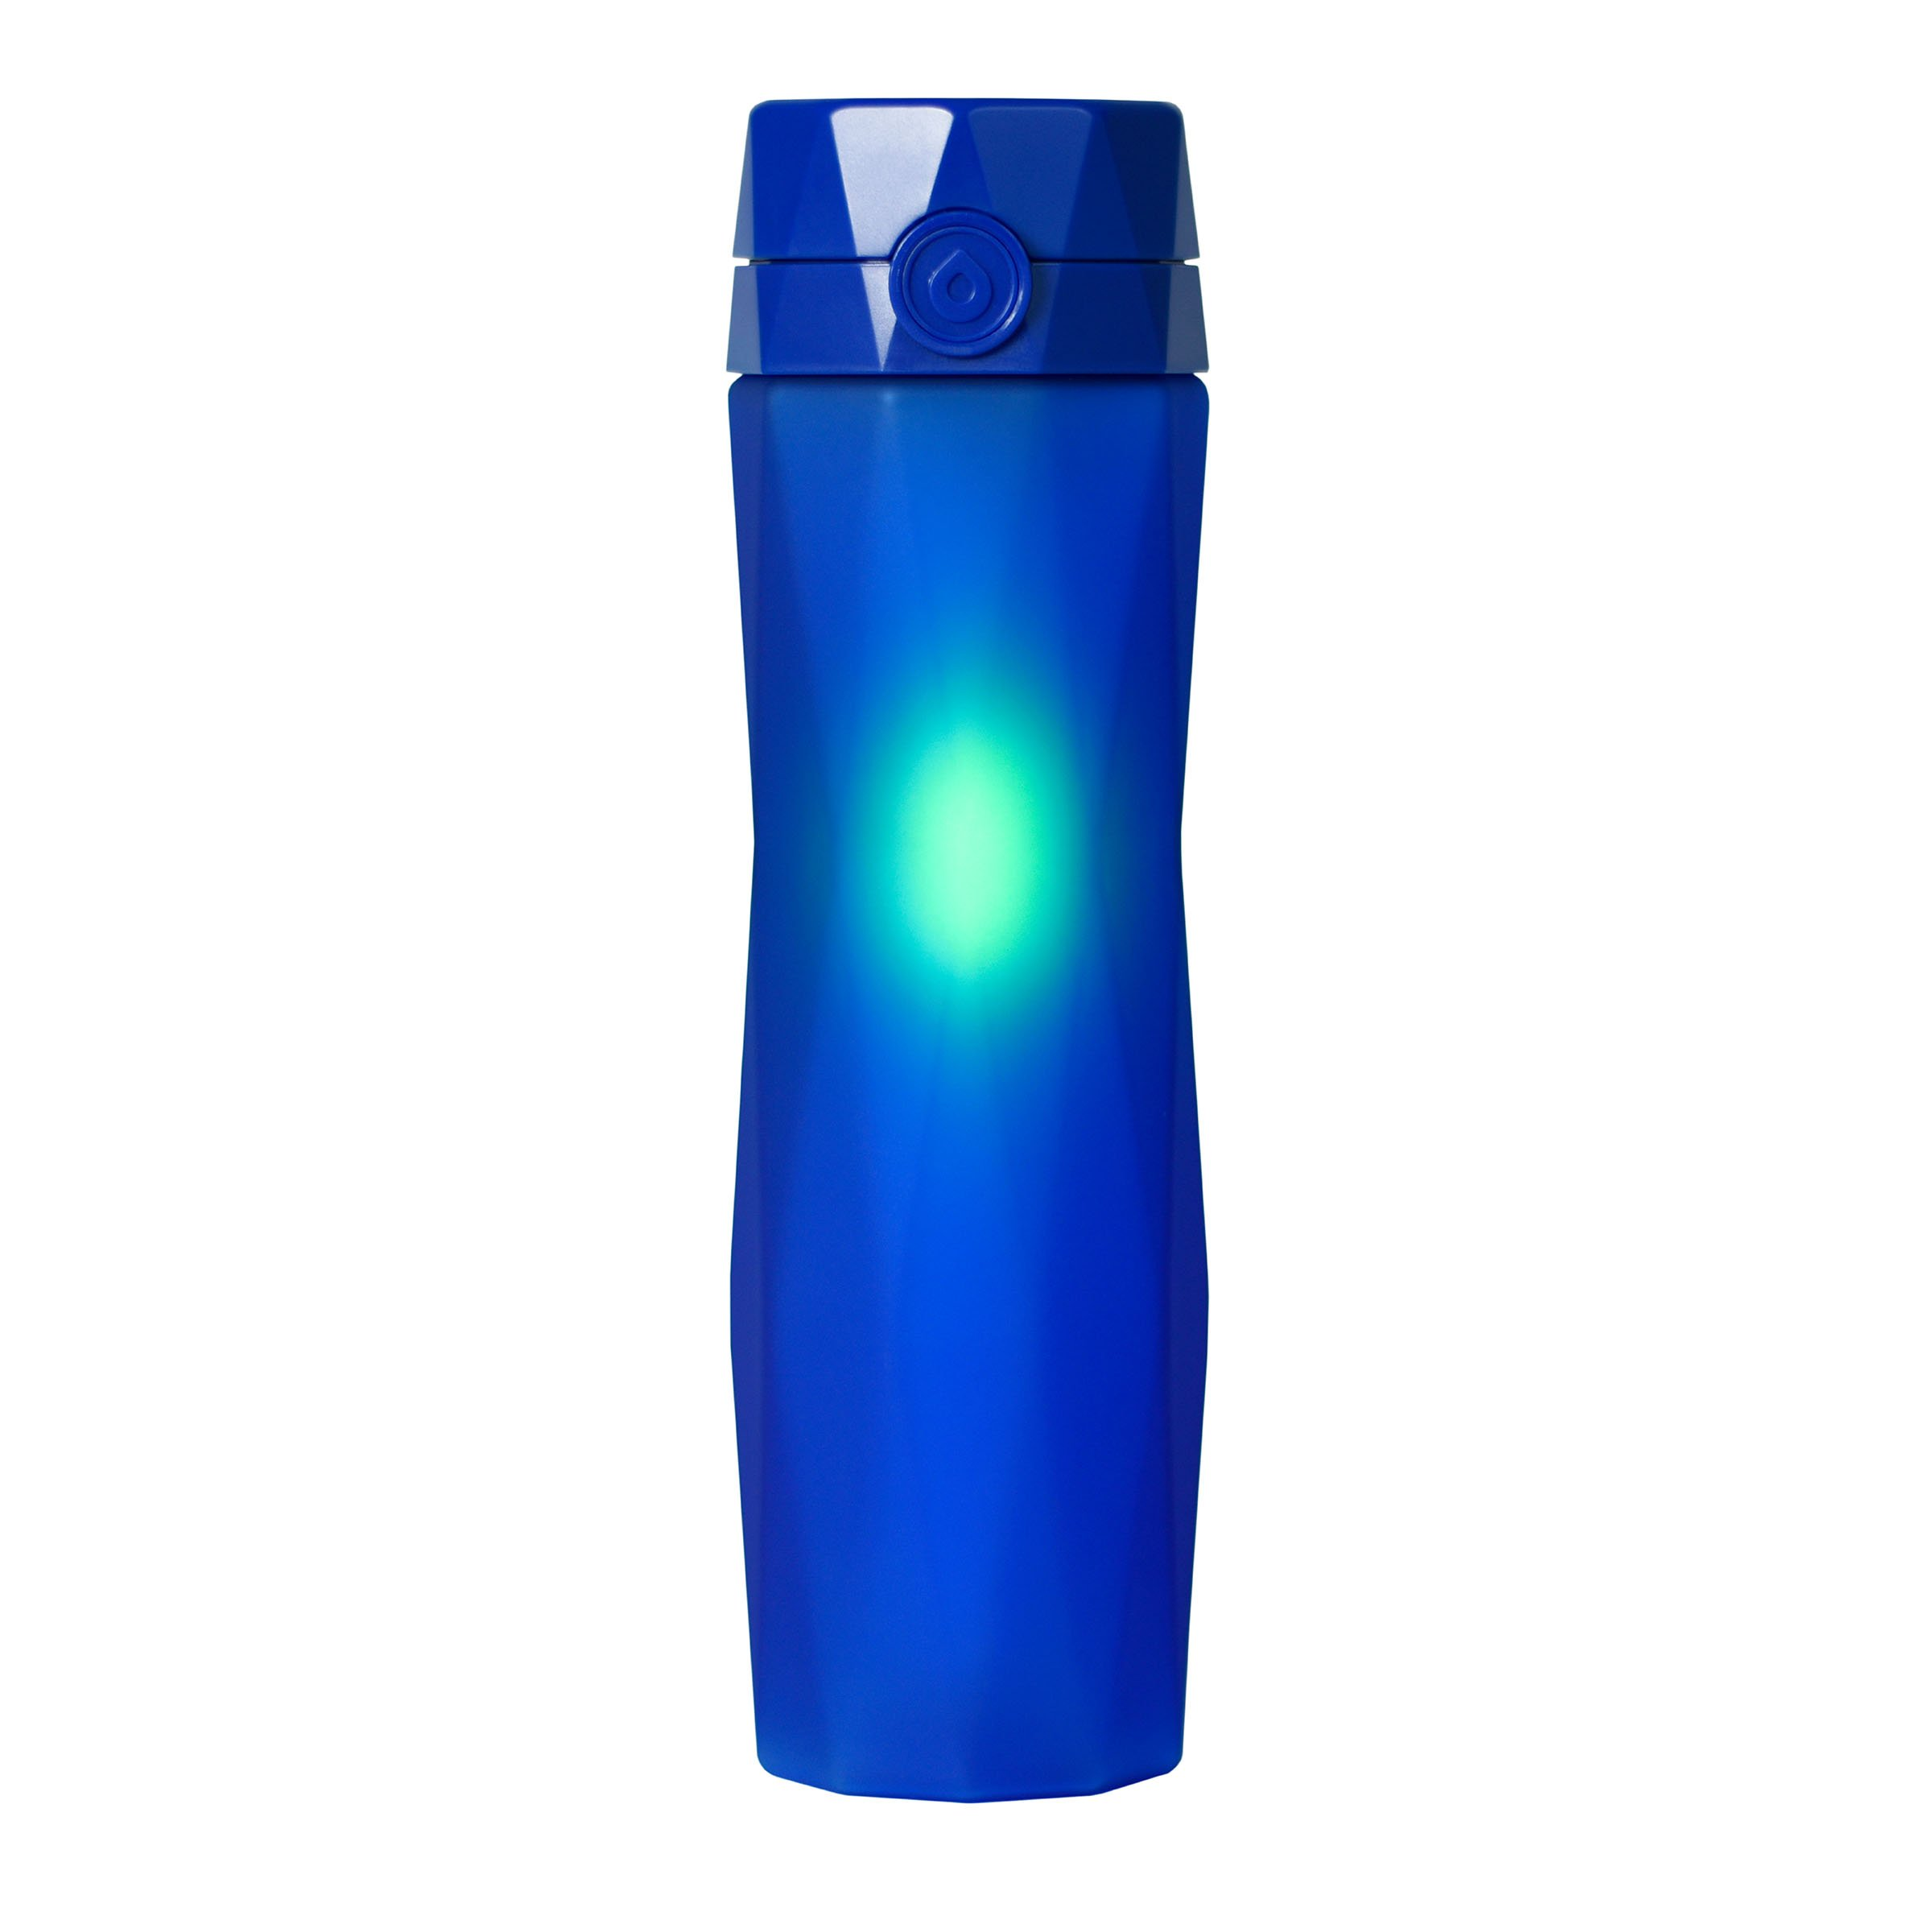 Hidrate Spark 2.0A Smart Water Bottle - New & Improved - Tracks Water Intake & Glows to Remind You to Stay Hydrated (Royal Blue)